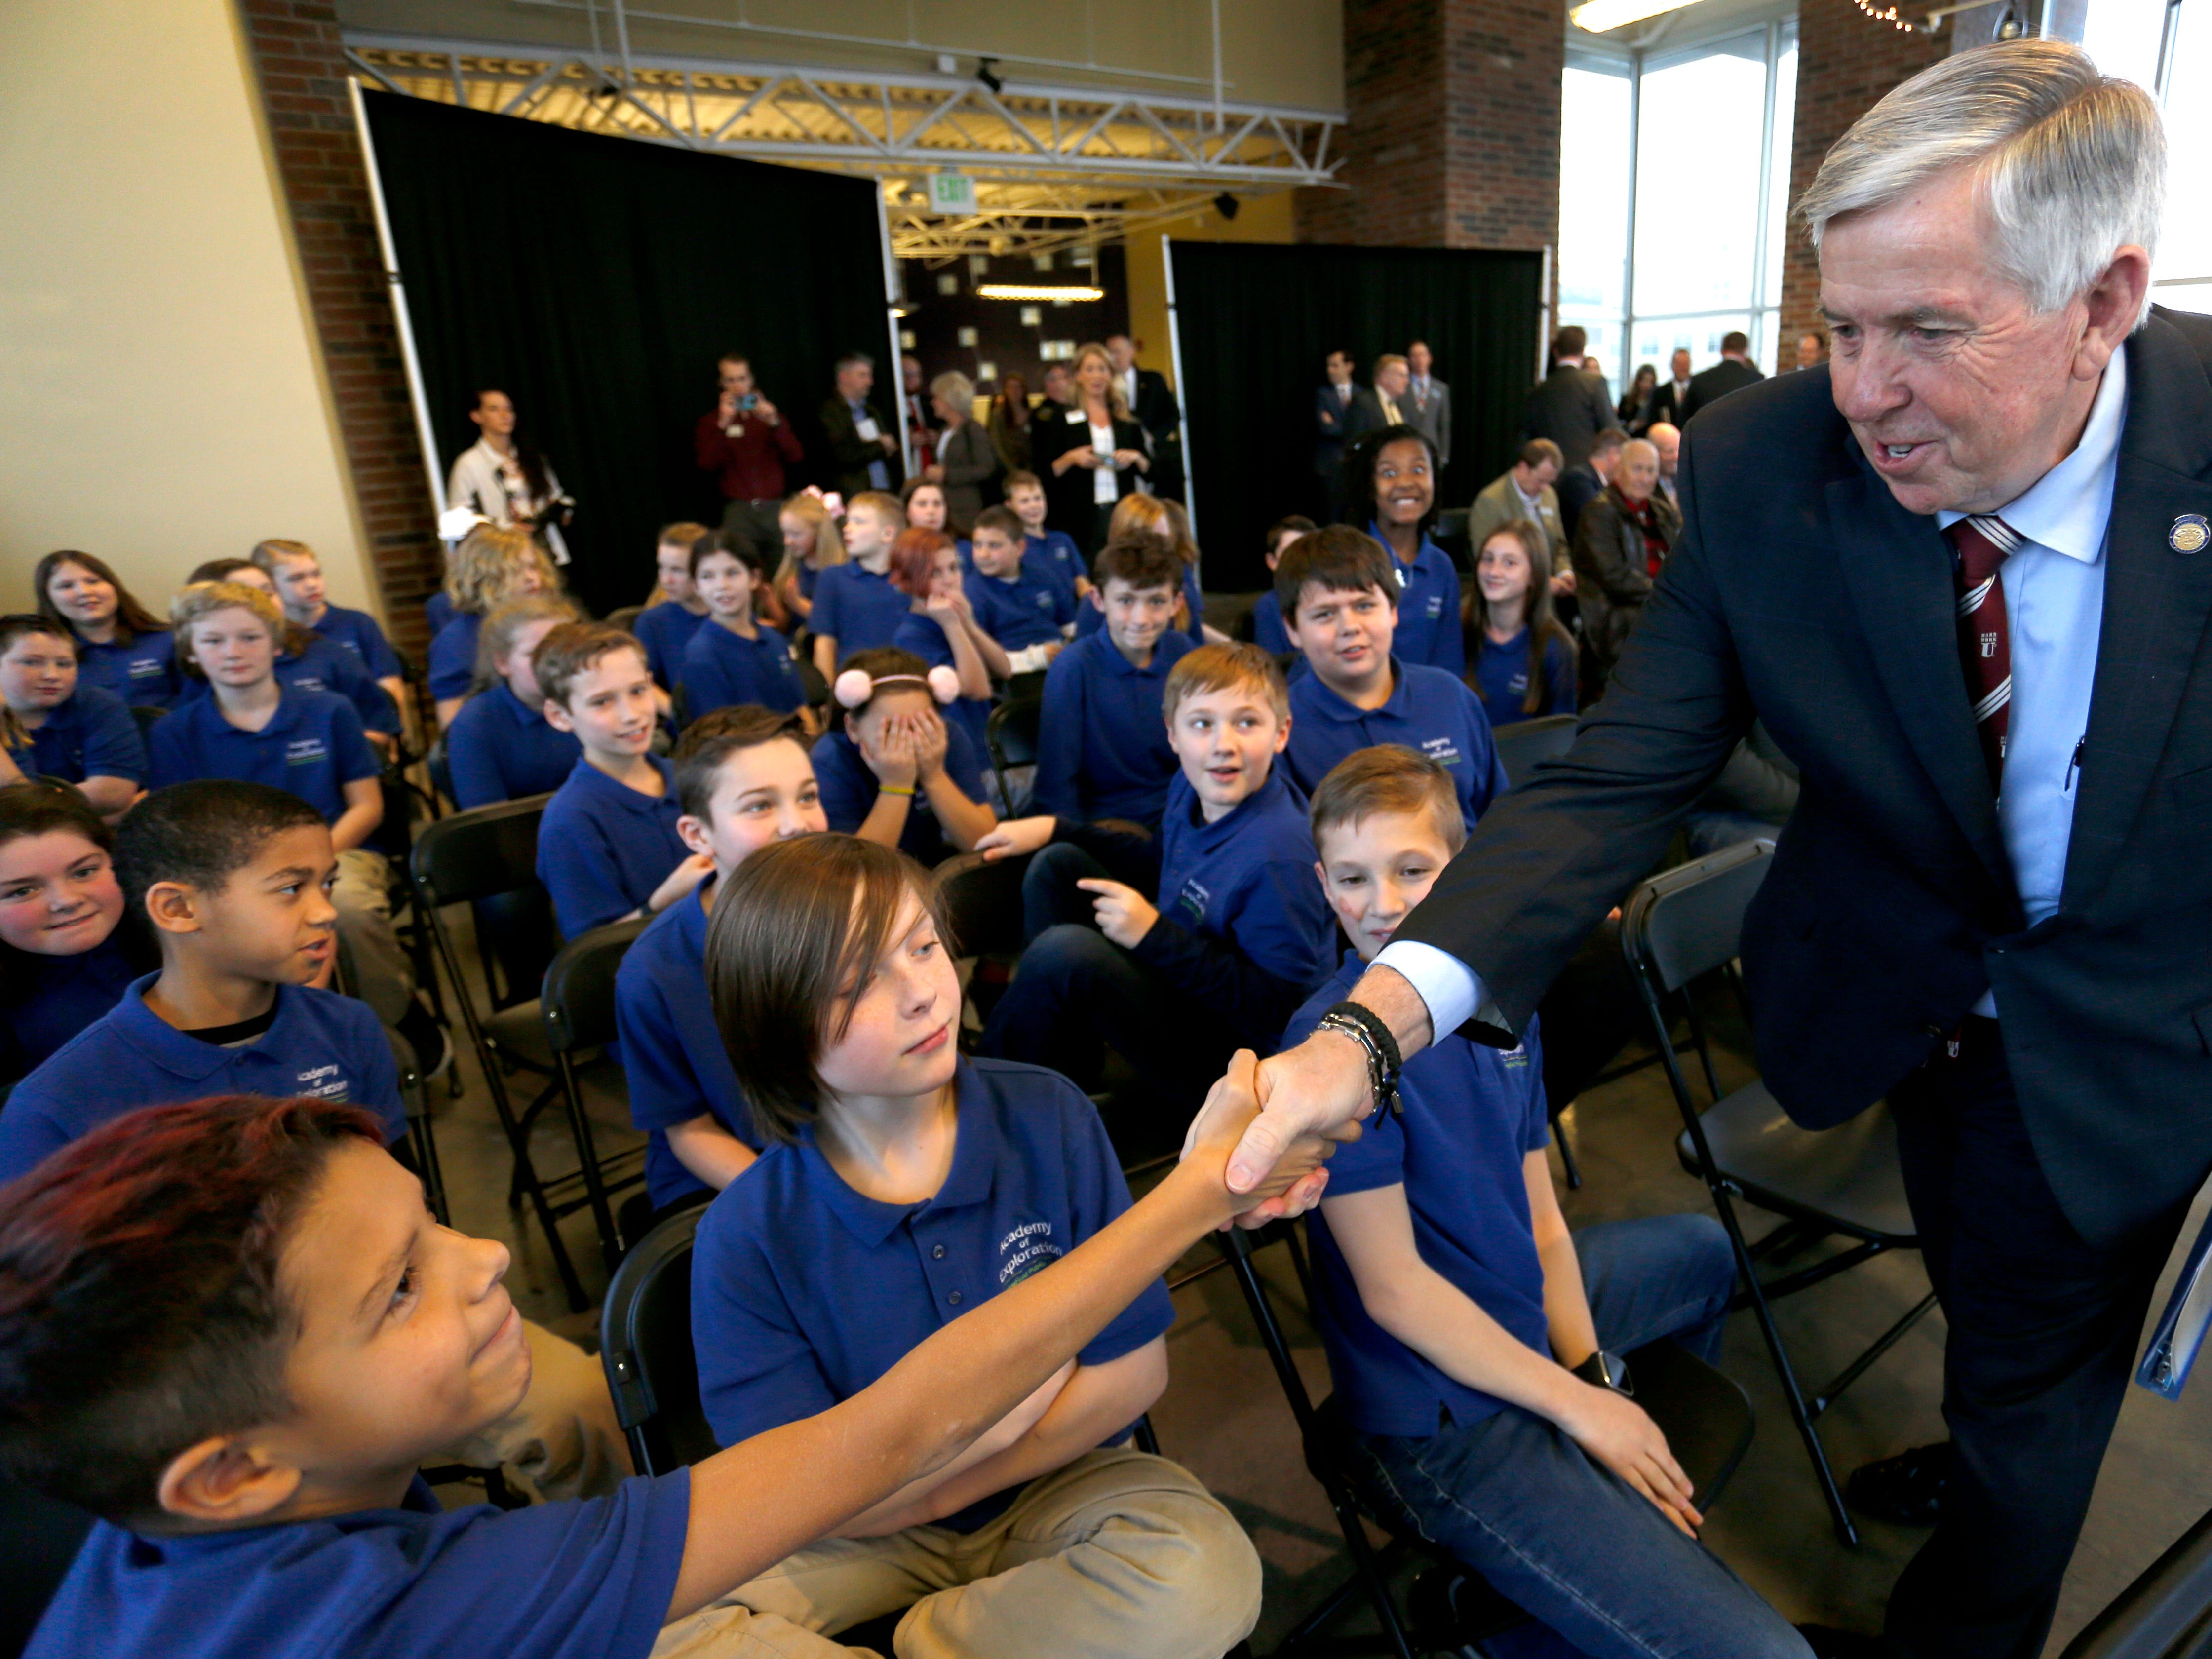 Gov. Mike Parson shakes hands with children from the Academy of Exploration at the Discovery Center on Friday, Jan. 18, 2019. Parson announced a grant of almost $474,000 from the Missouri Department of Economic Development to go toward STEM and opioid education.